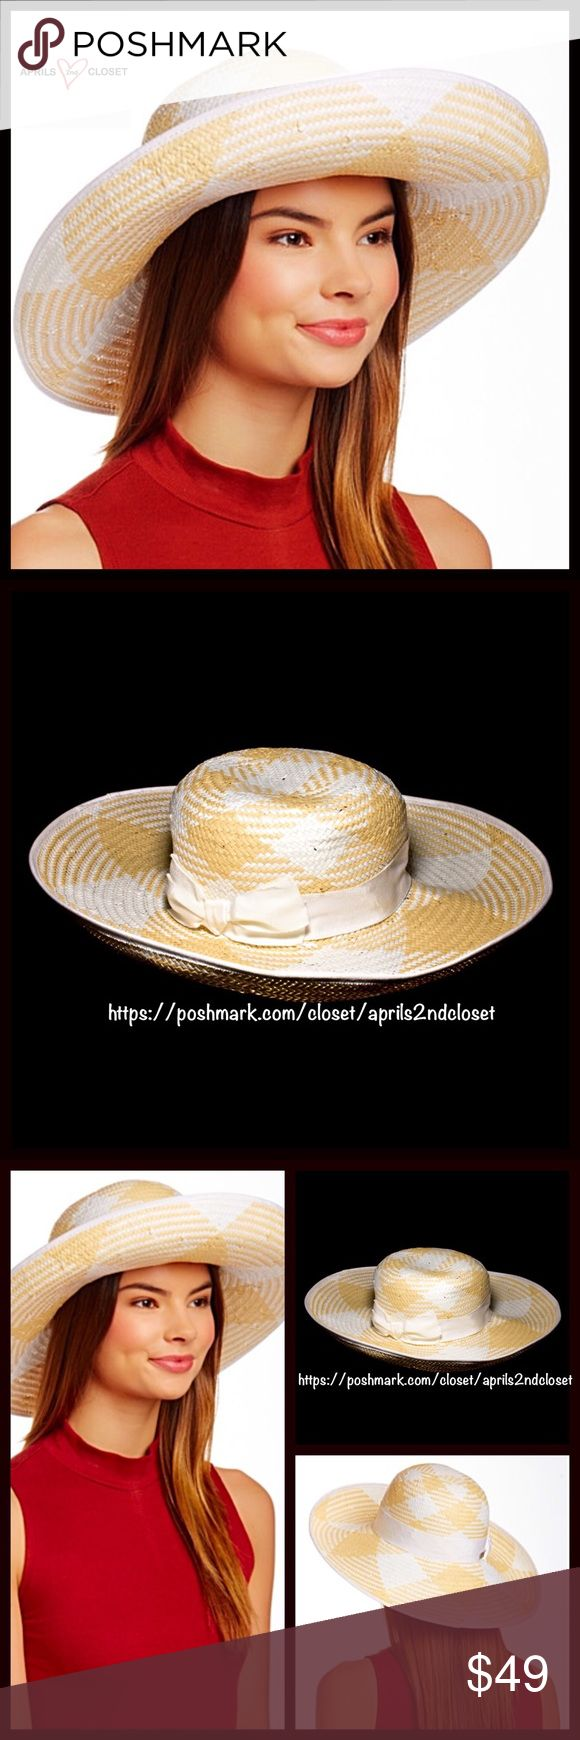 """Betmar Wide Brim Hat Betmar Wide Brim Hat 💟NEW WITH TAGS💟  RETAIL PRICE: $78   * Pattern woven construction; Approx. 5"""" brim (much larger than a fedora ).  * Contrasting band trim accent w/bow detail.   * Allover smooth weaved texture.  * Tagged-One size fits most.  Fabric: 100% Paper Color: White & Natural  Item# Floppy 🚫No Trades🚫 ✅ Offers Considered*/Bundle Discounts✅  *Please use the blue 'offer' button to submit an offer. Betmar Accessories Hats"""